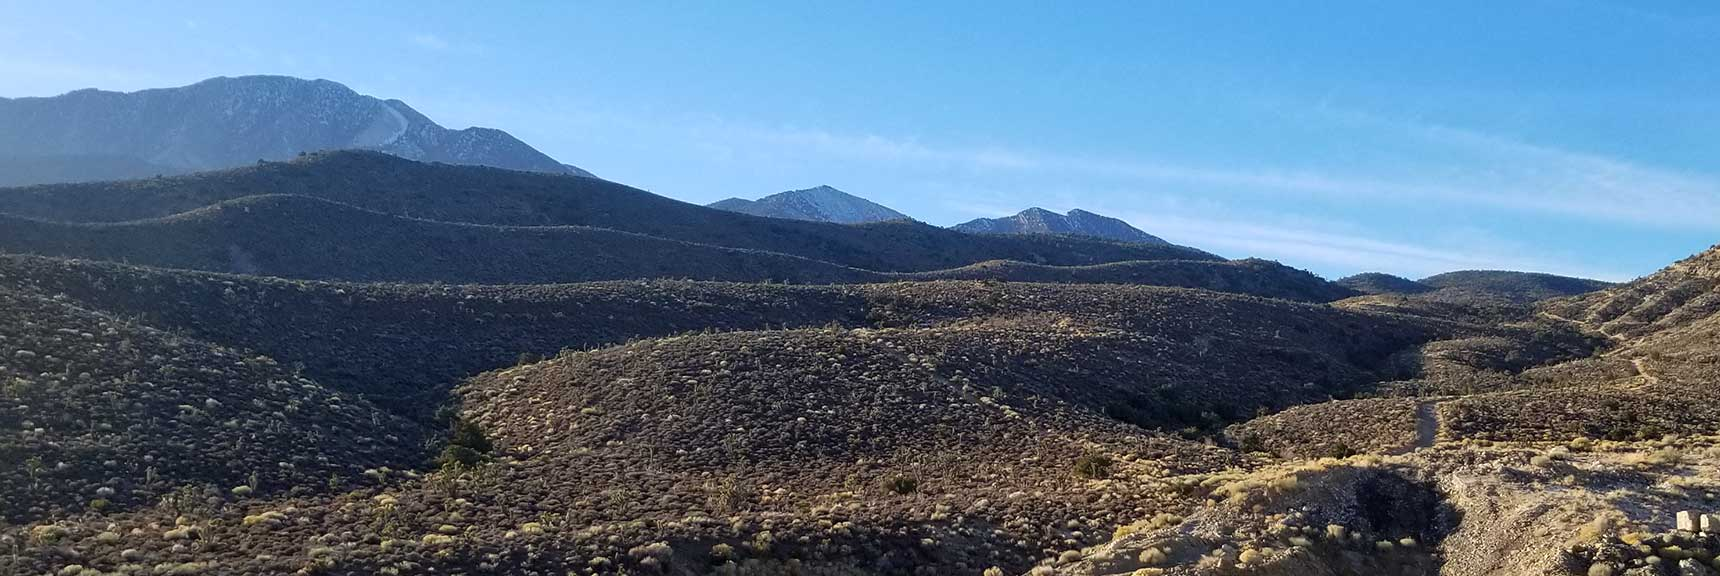 4-Wheel Drive Road System Begins, La Madre Mountain Wilderness from the North, Nevada